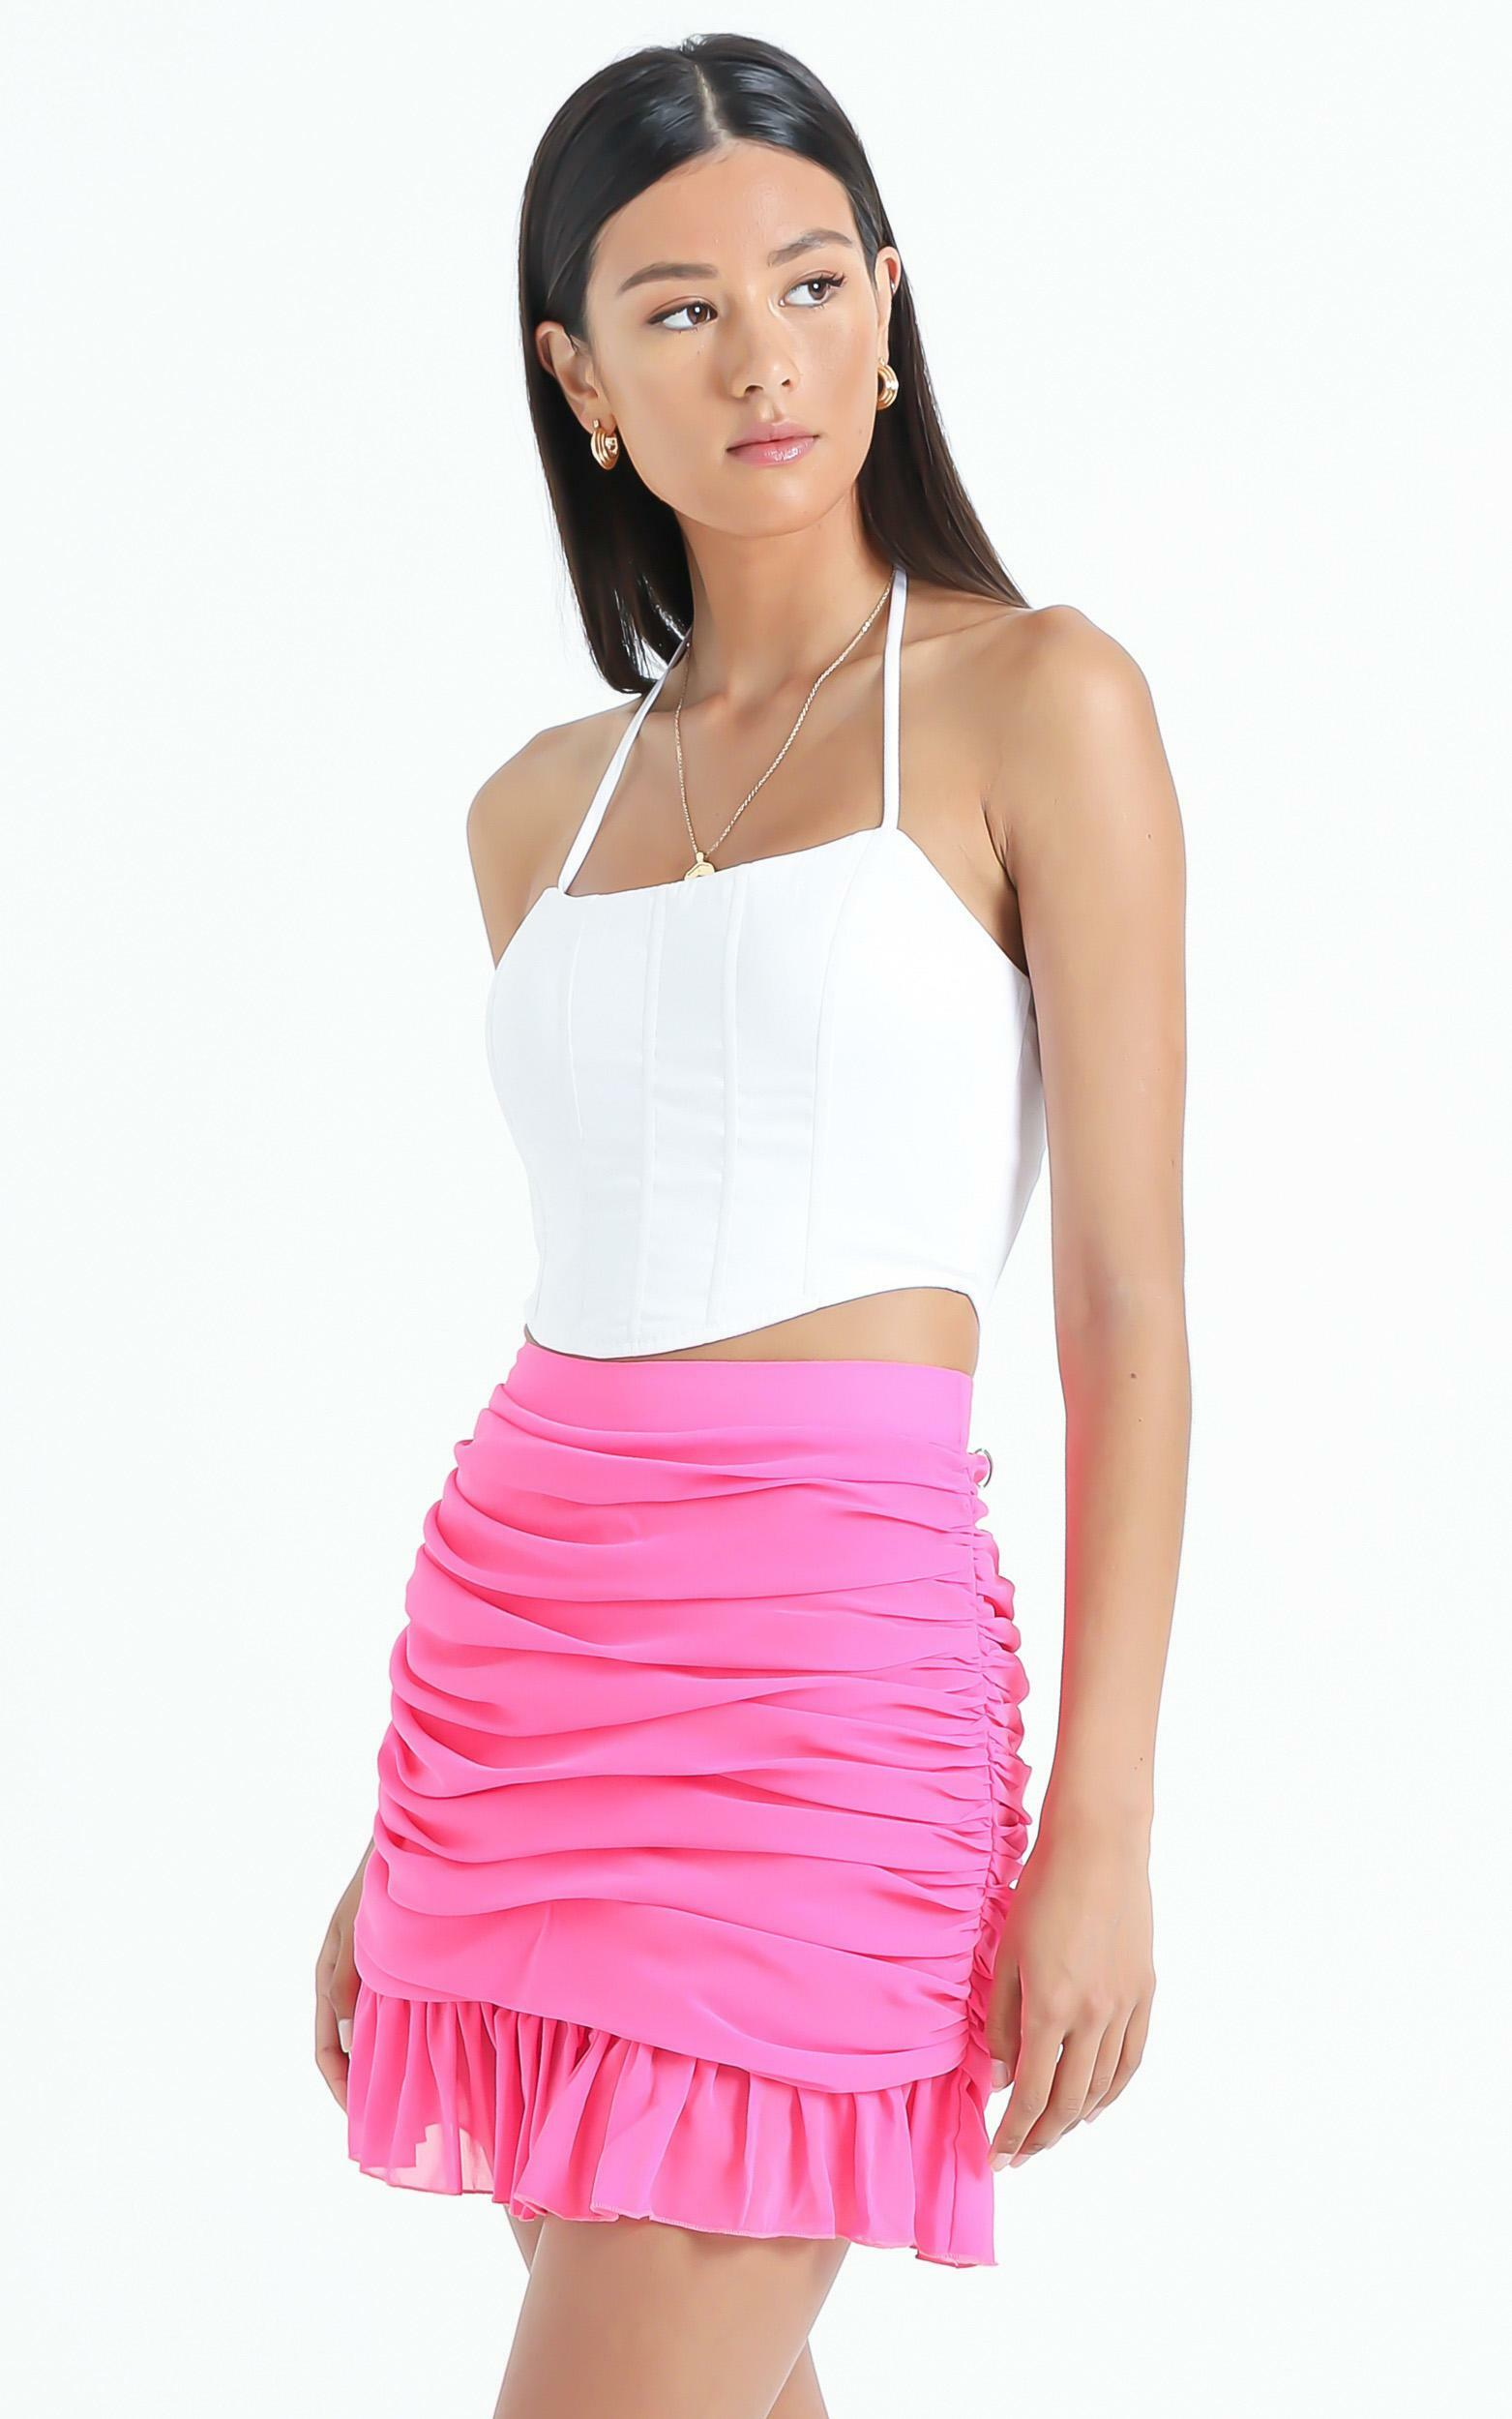 Manon Skirt in Hot Pink - 6 (XS), Pink, hi-res image number null